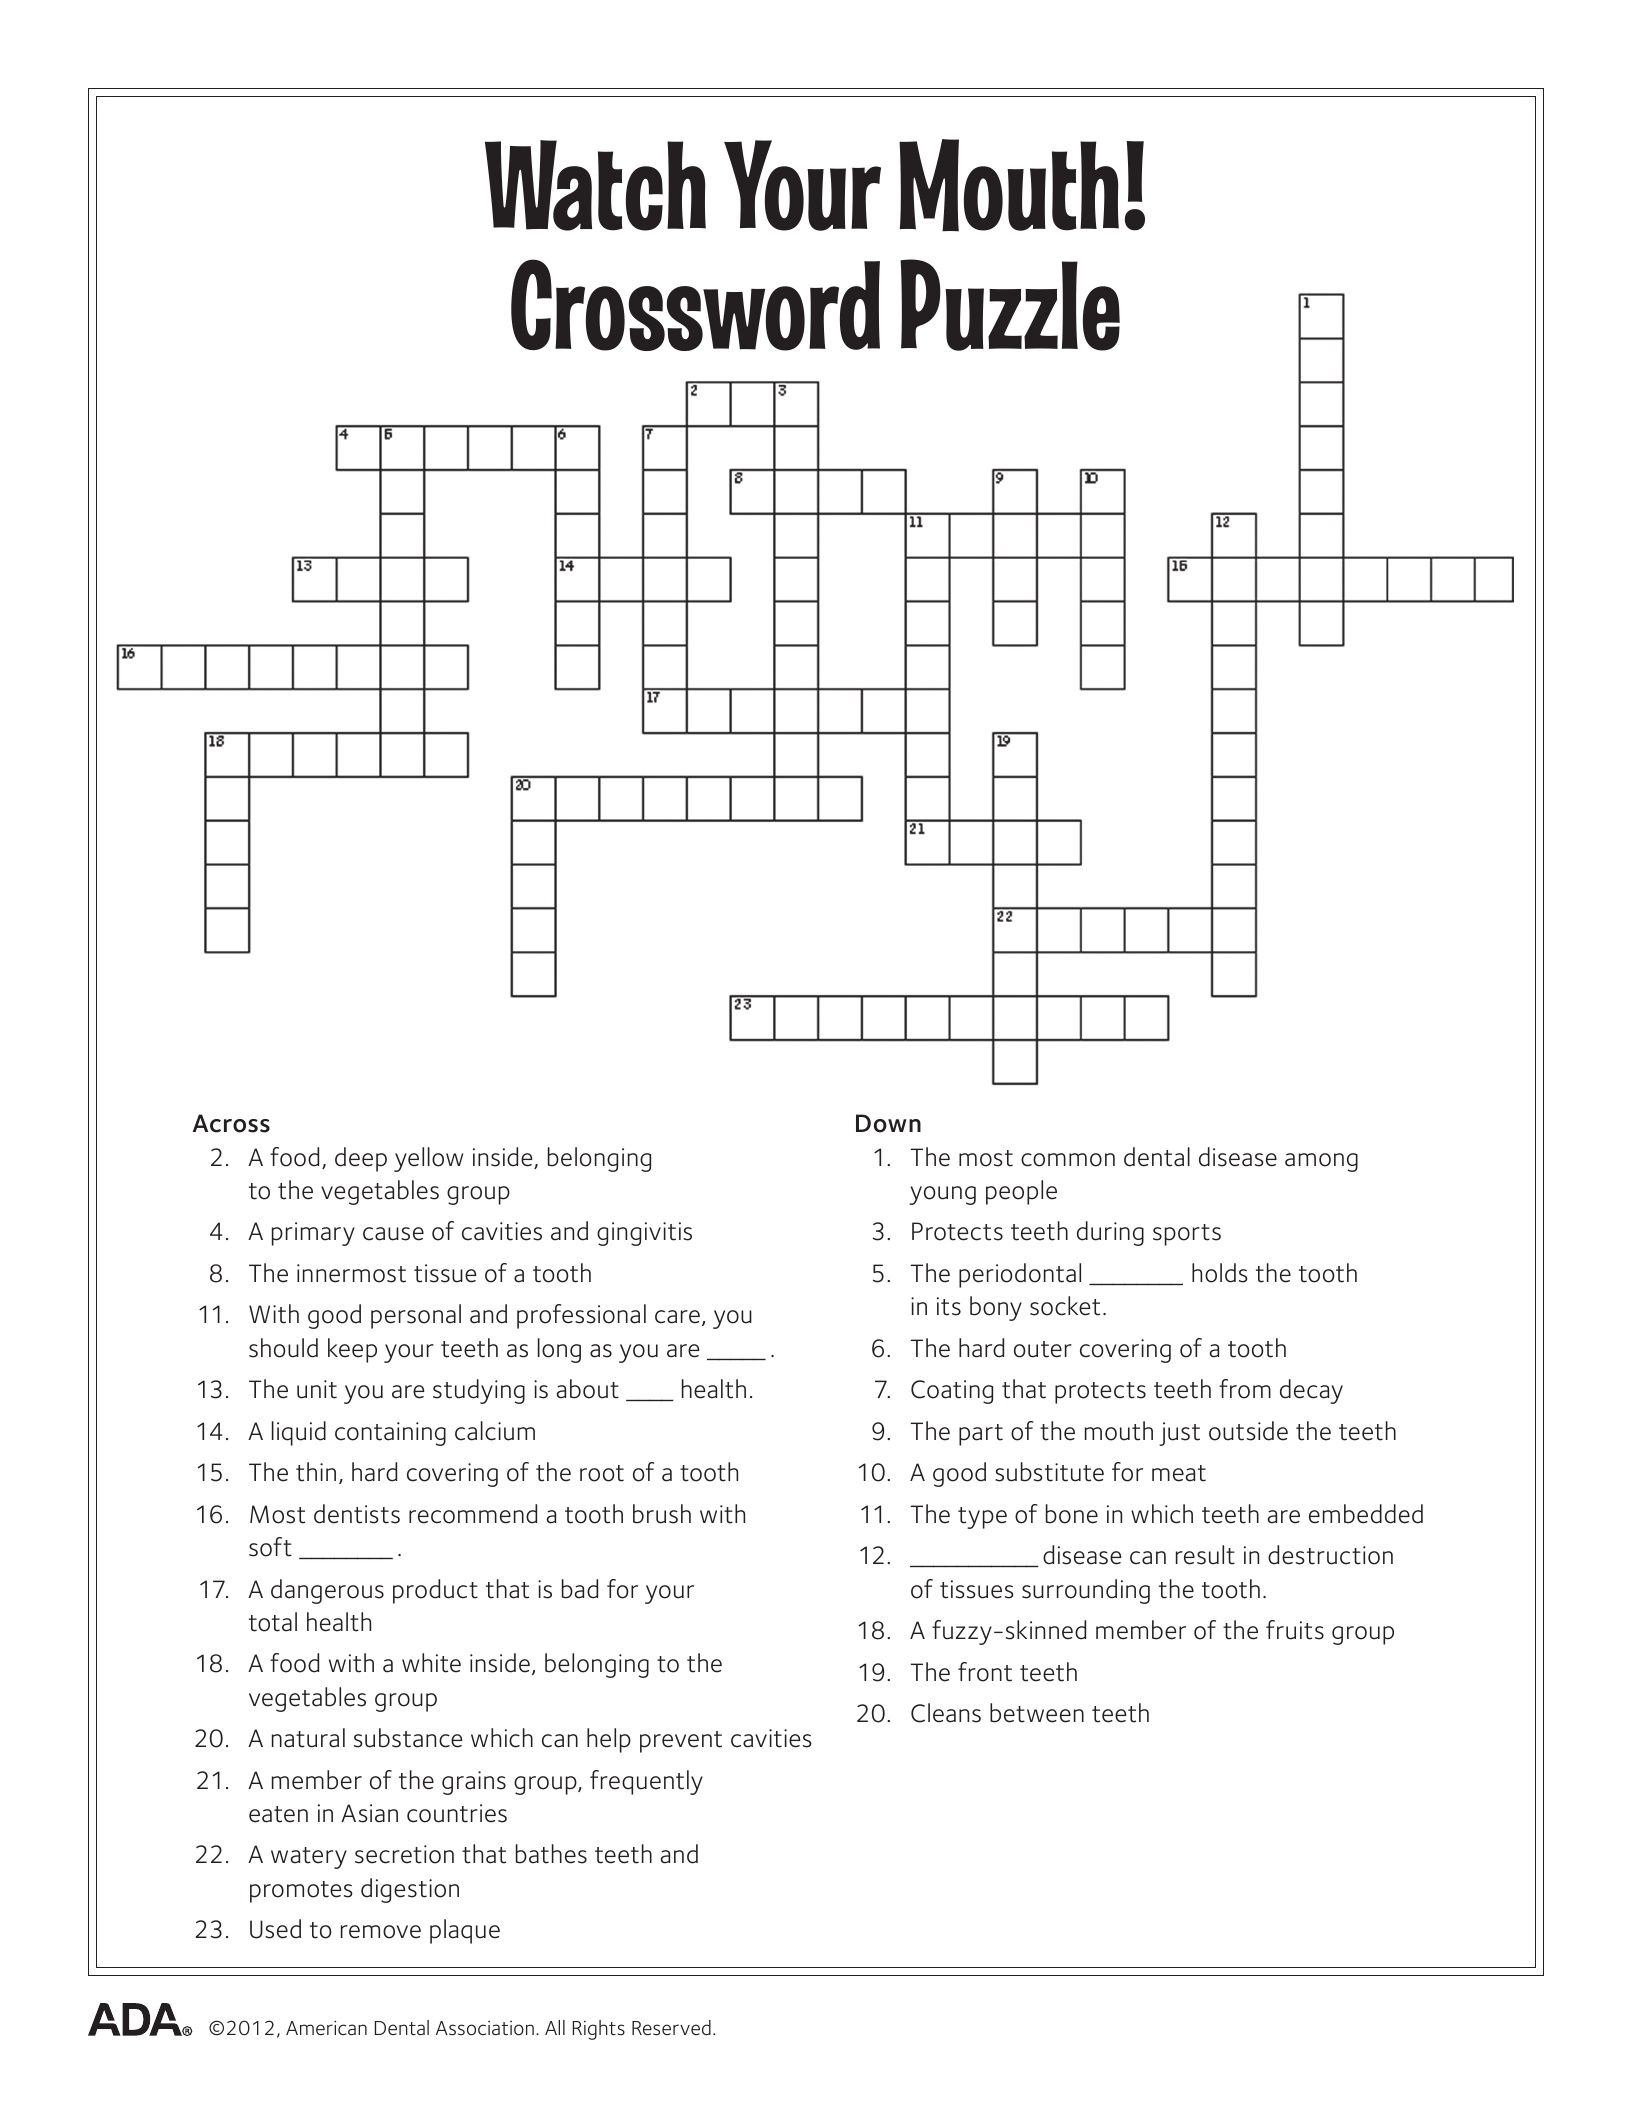 11 Dental Health Activities Puzzle Fun (Printable) | Dental Hygiene - Free Printable Recovery Crossword Puzzles